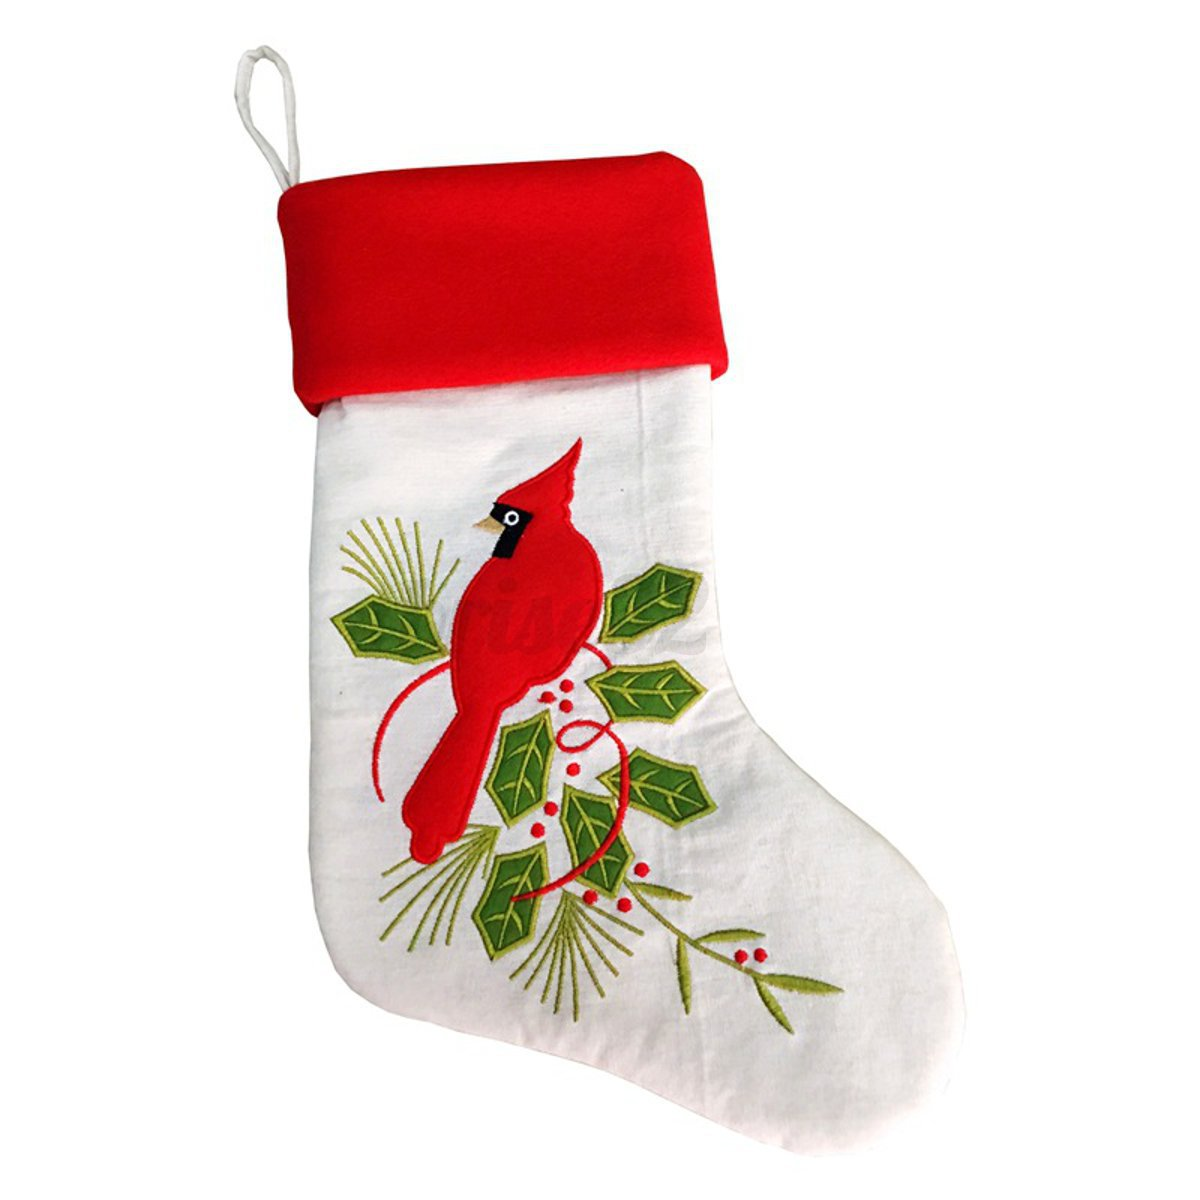 Personalised-Christmas-Santa-Claus-Candy-Sack-Gifts-Present-Xmas-Socks-Stocking miniatura 11